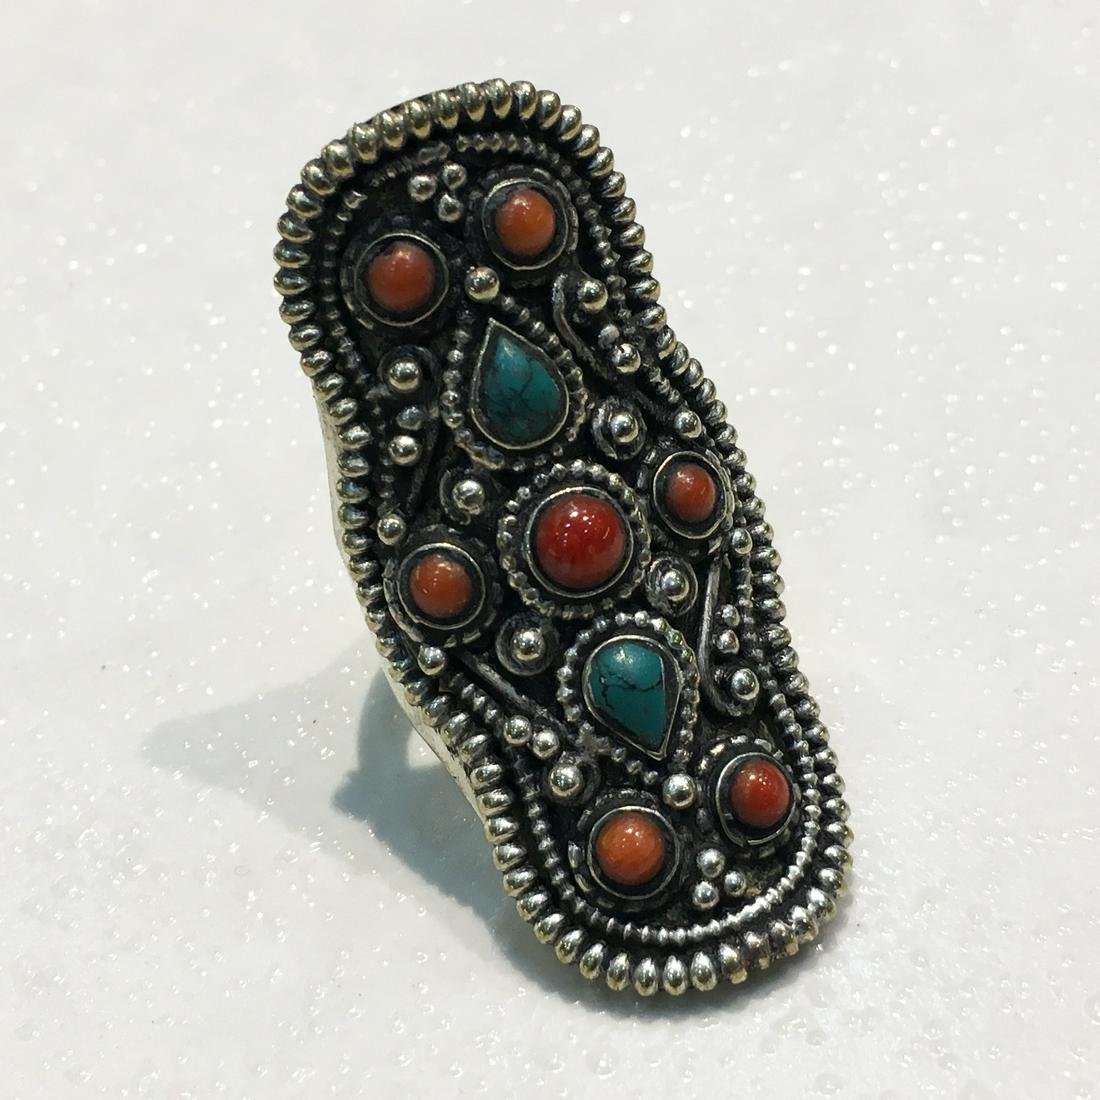 Tibetan Turquoise Hand Carved Antique Old Ring - 9.5MM